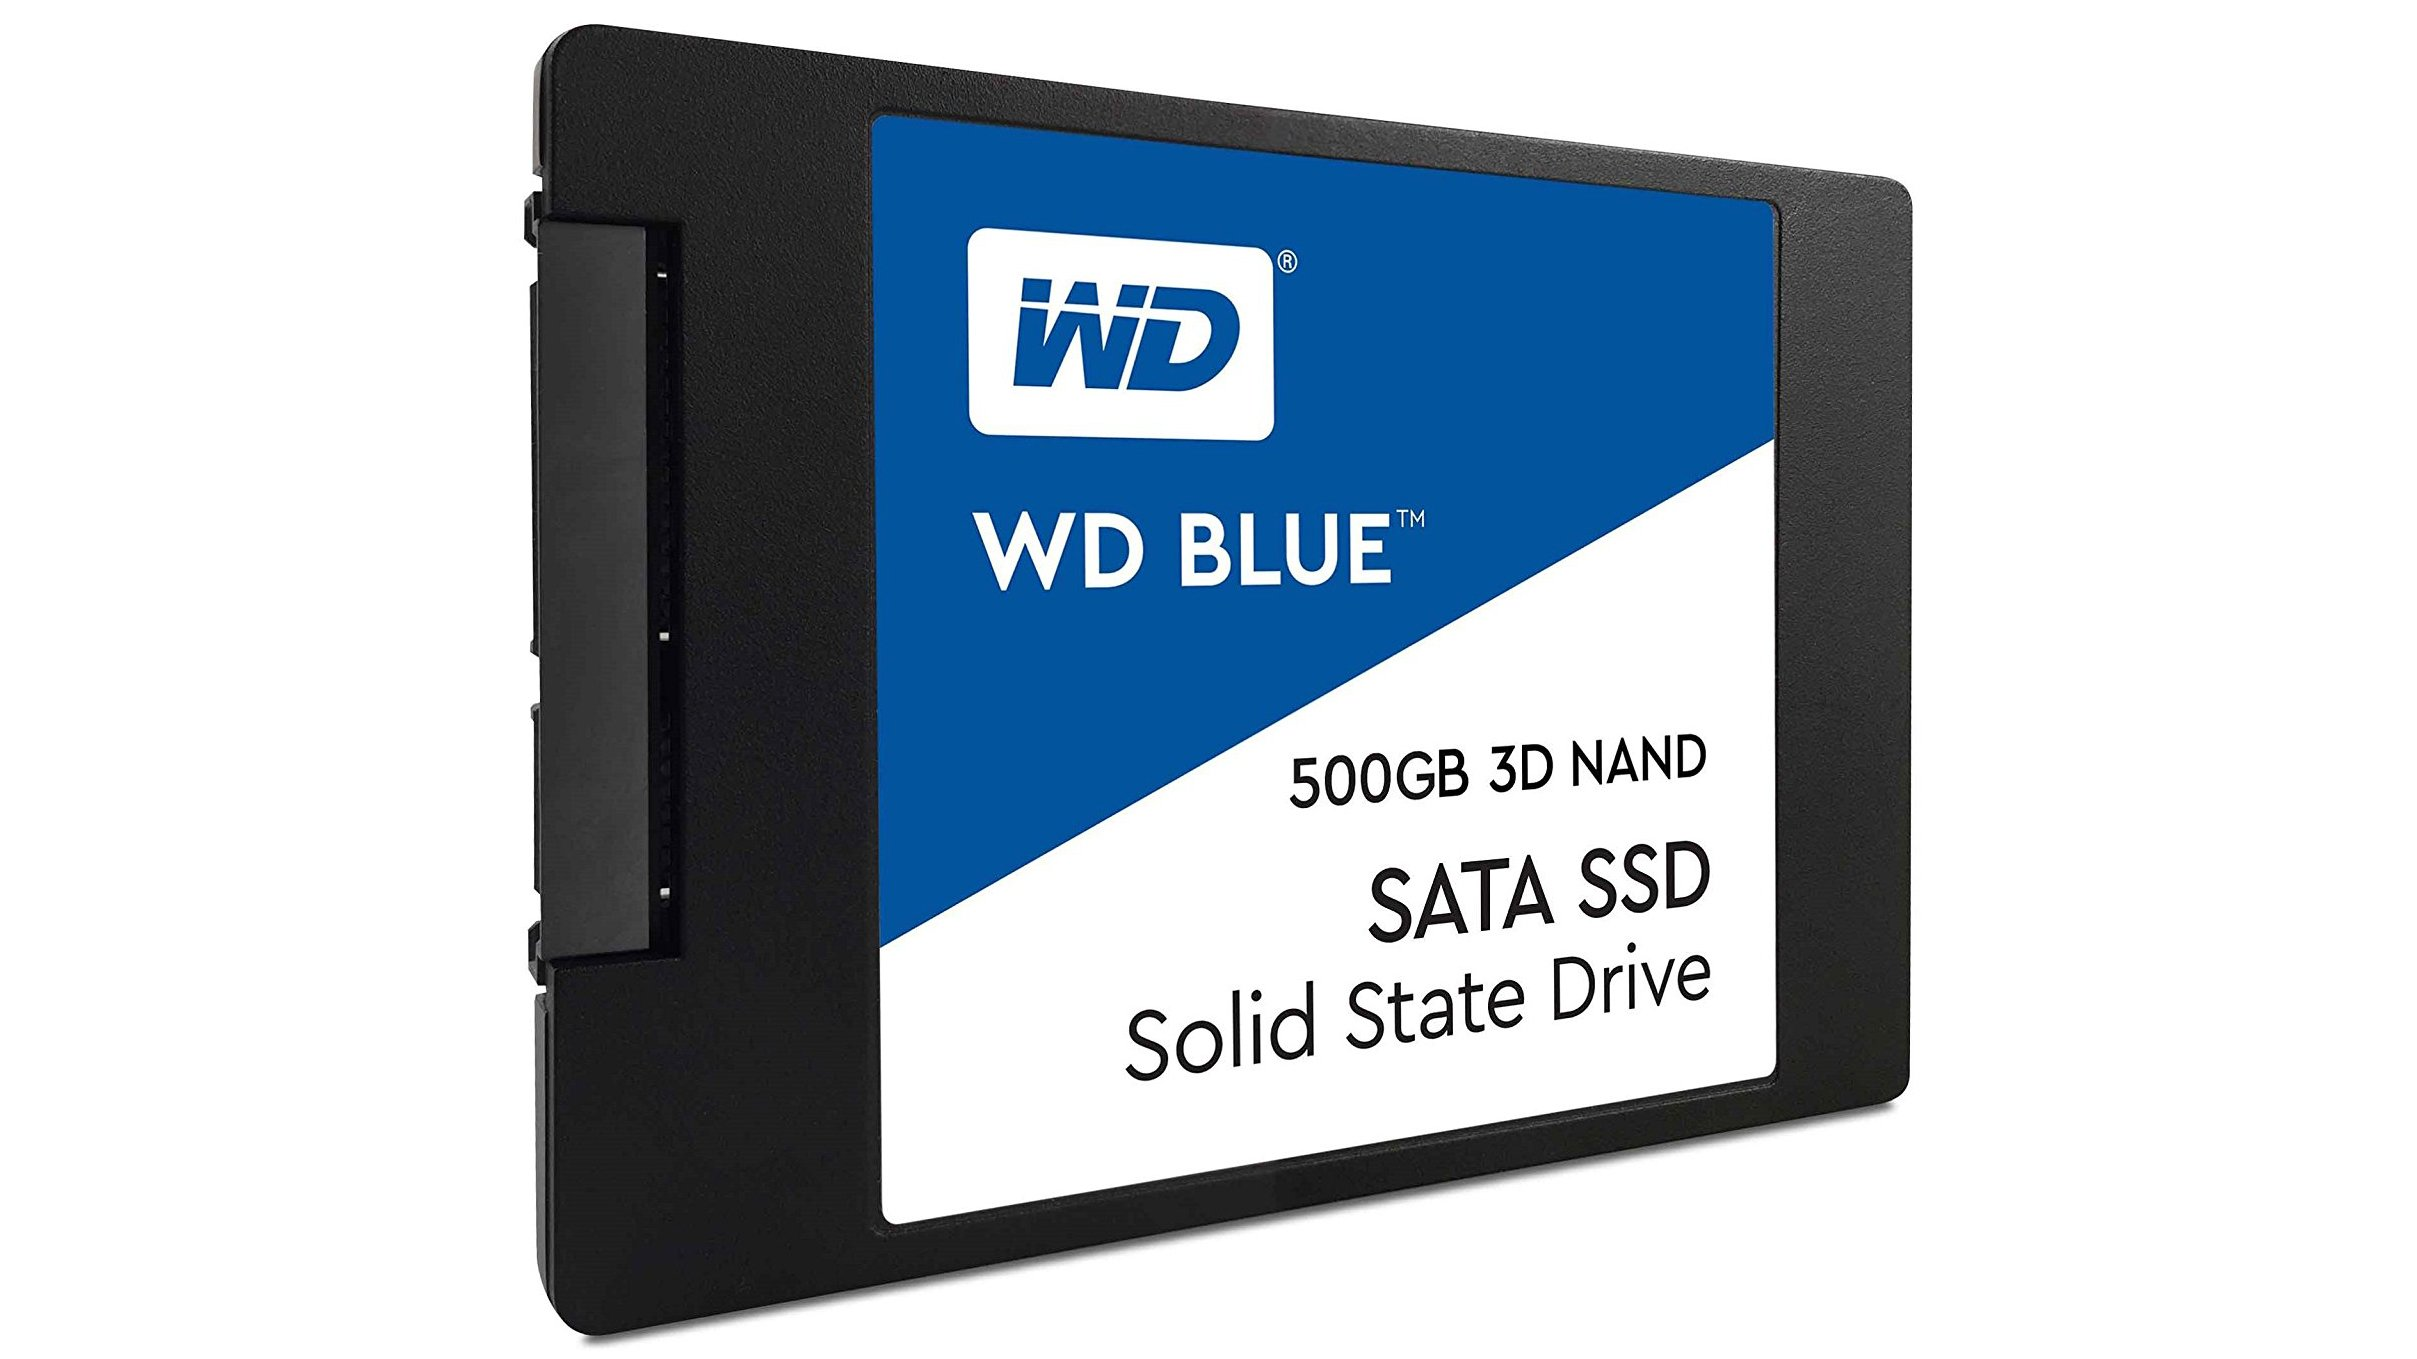 Wd Blue 3d 500gb Review A Perfectly Decent Mainstream Sata Ssd